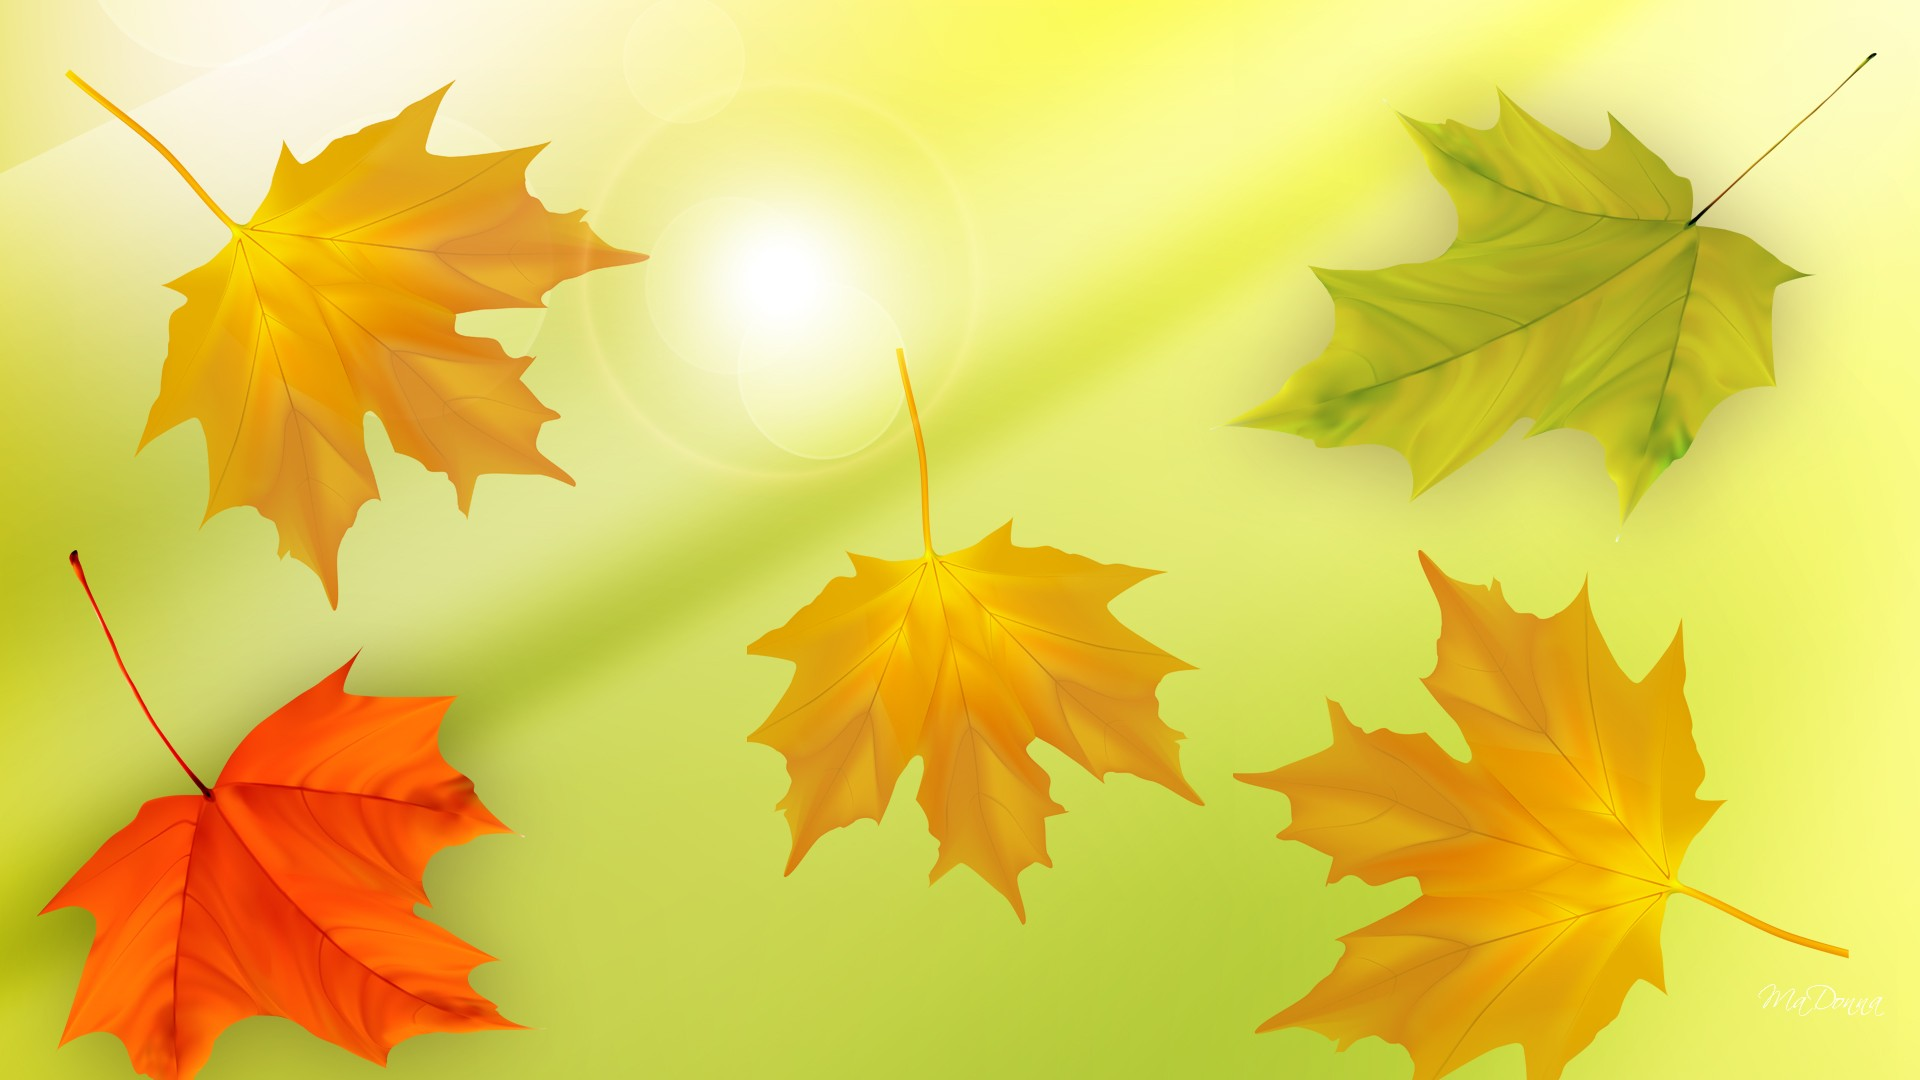 Maple Leaf Motors >> Maple Leaves Artwork - Wallpaper, High Definition, High Quality, Widescreen